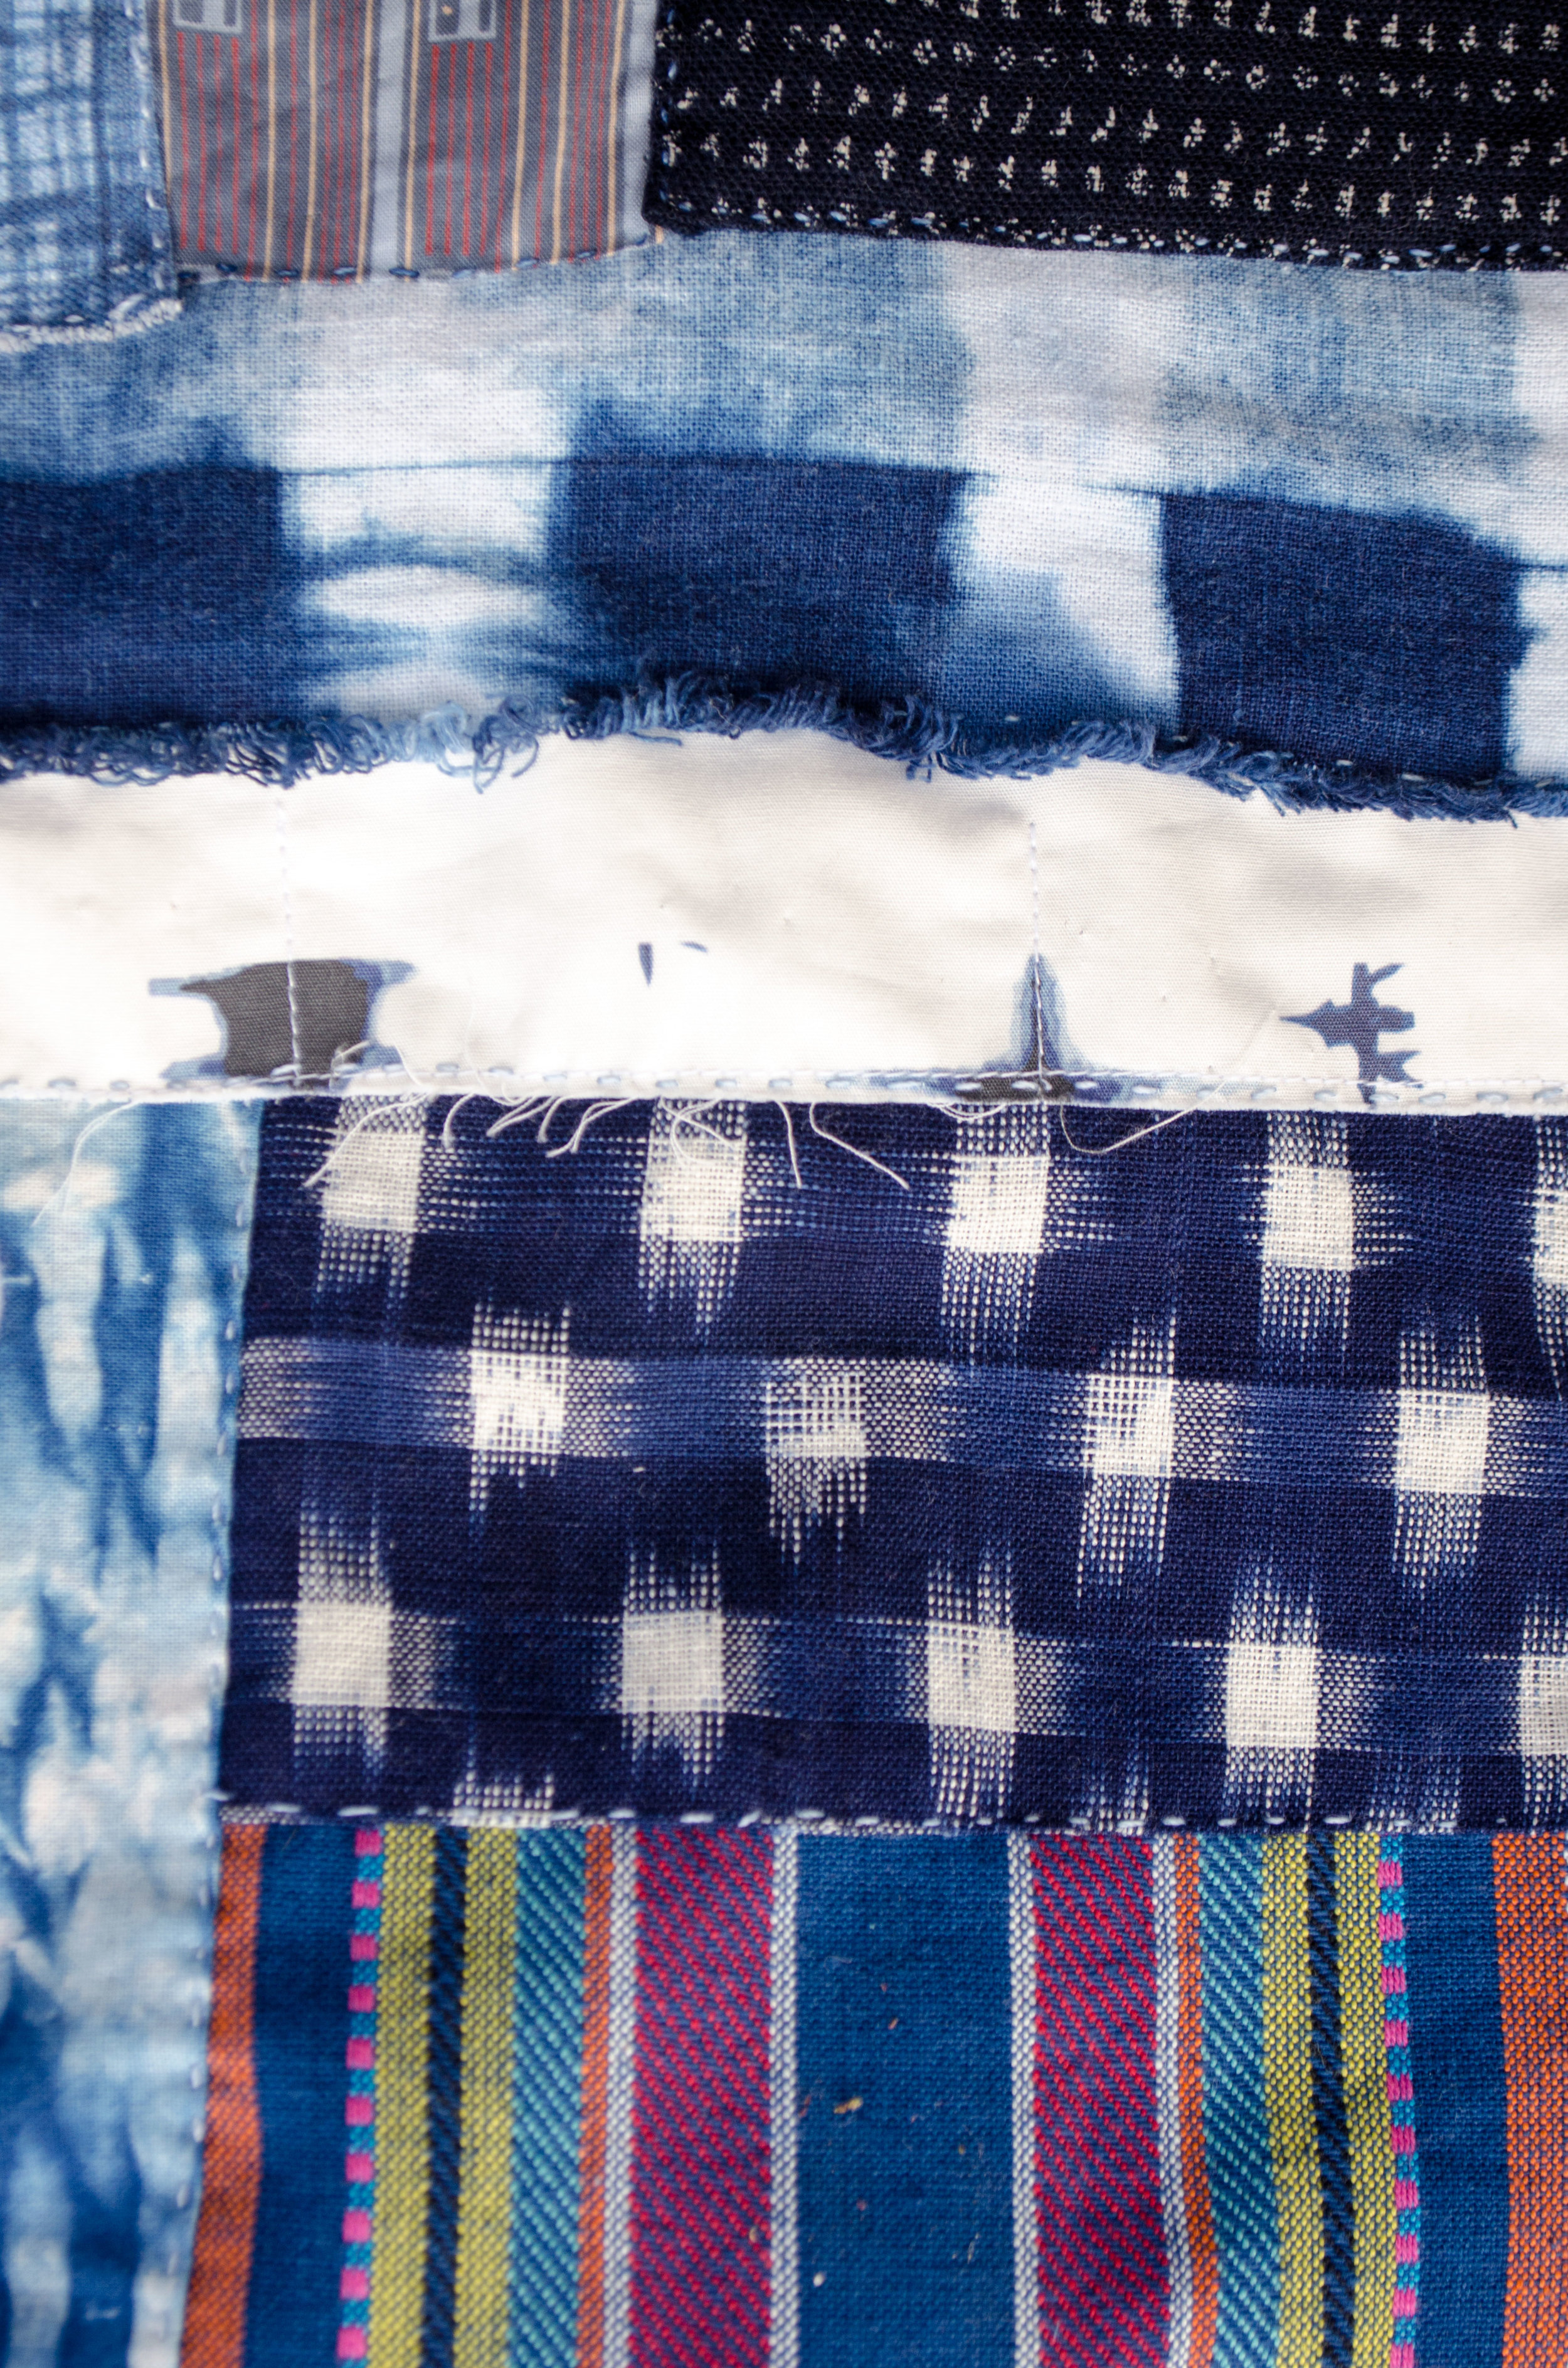 Day 39 of the Stitch A Day Challenge by Carlyn Clark, more piecing